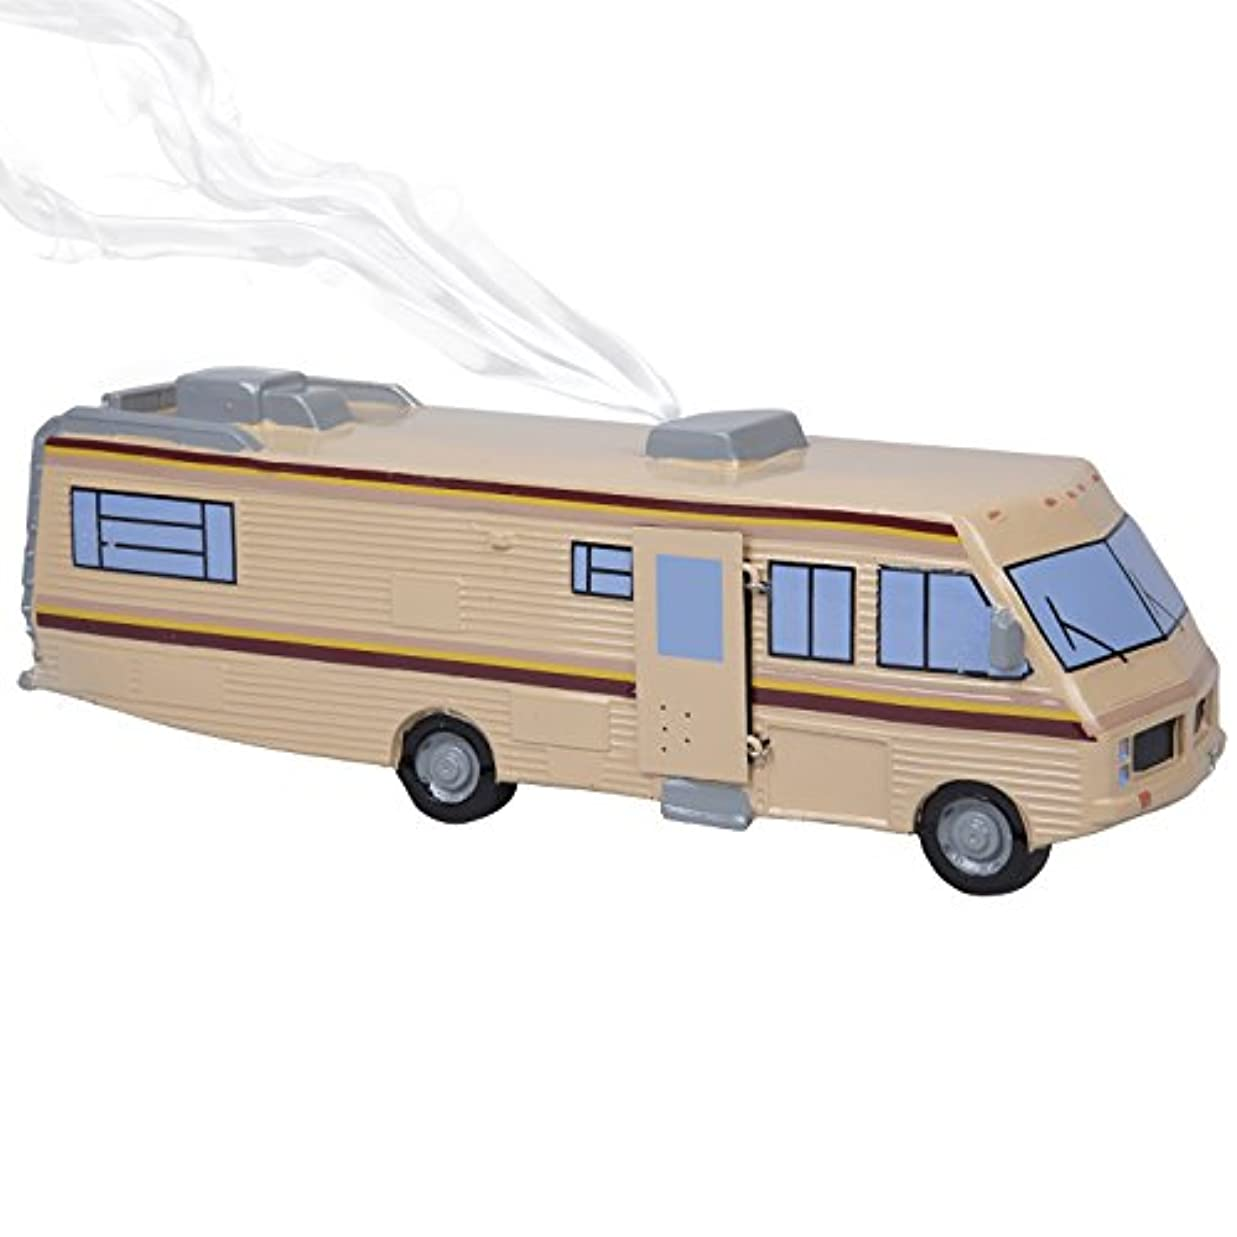 アリーナランデブー違法SCS Direct Breaking Bad Incense Burner – 1986 Fleetwood Bounder RVレプリカ – Burn Incense Conesまたはレンガ